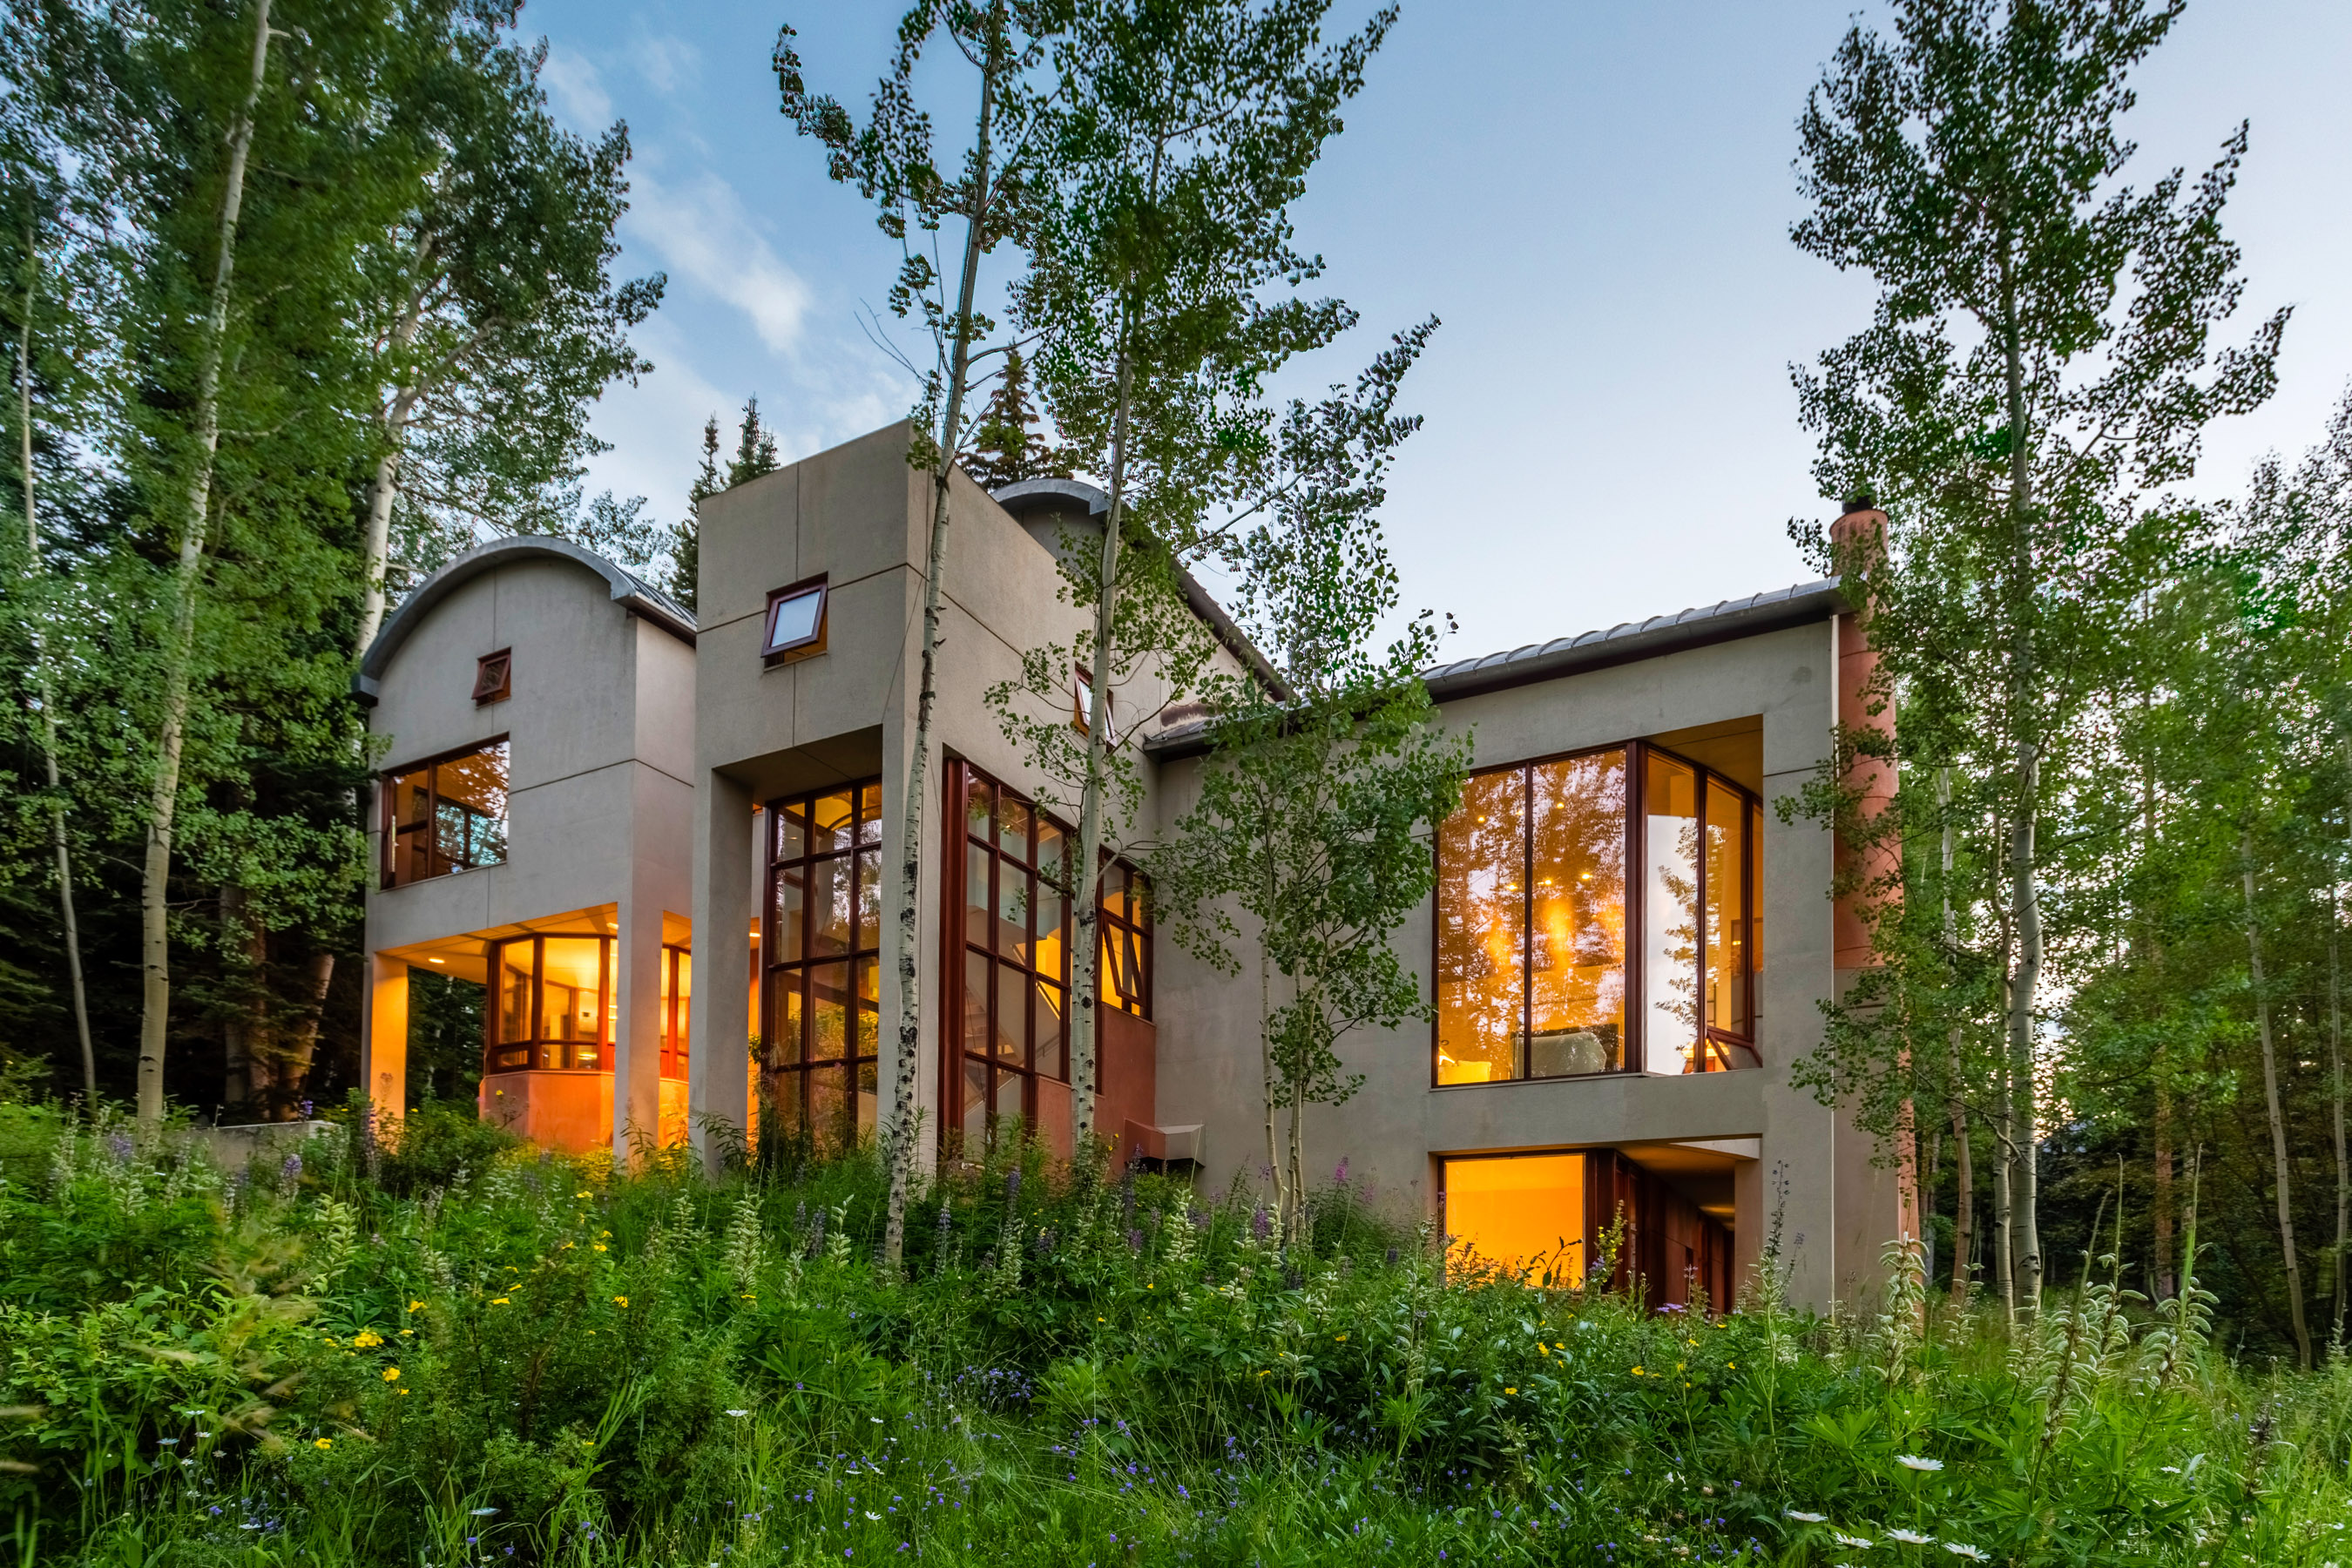 84 Pine Lane Snowmass Village Photo 1